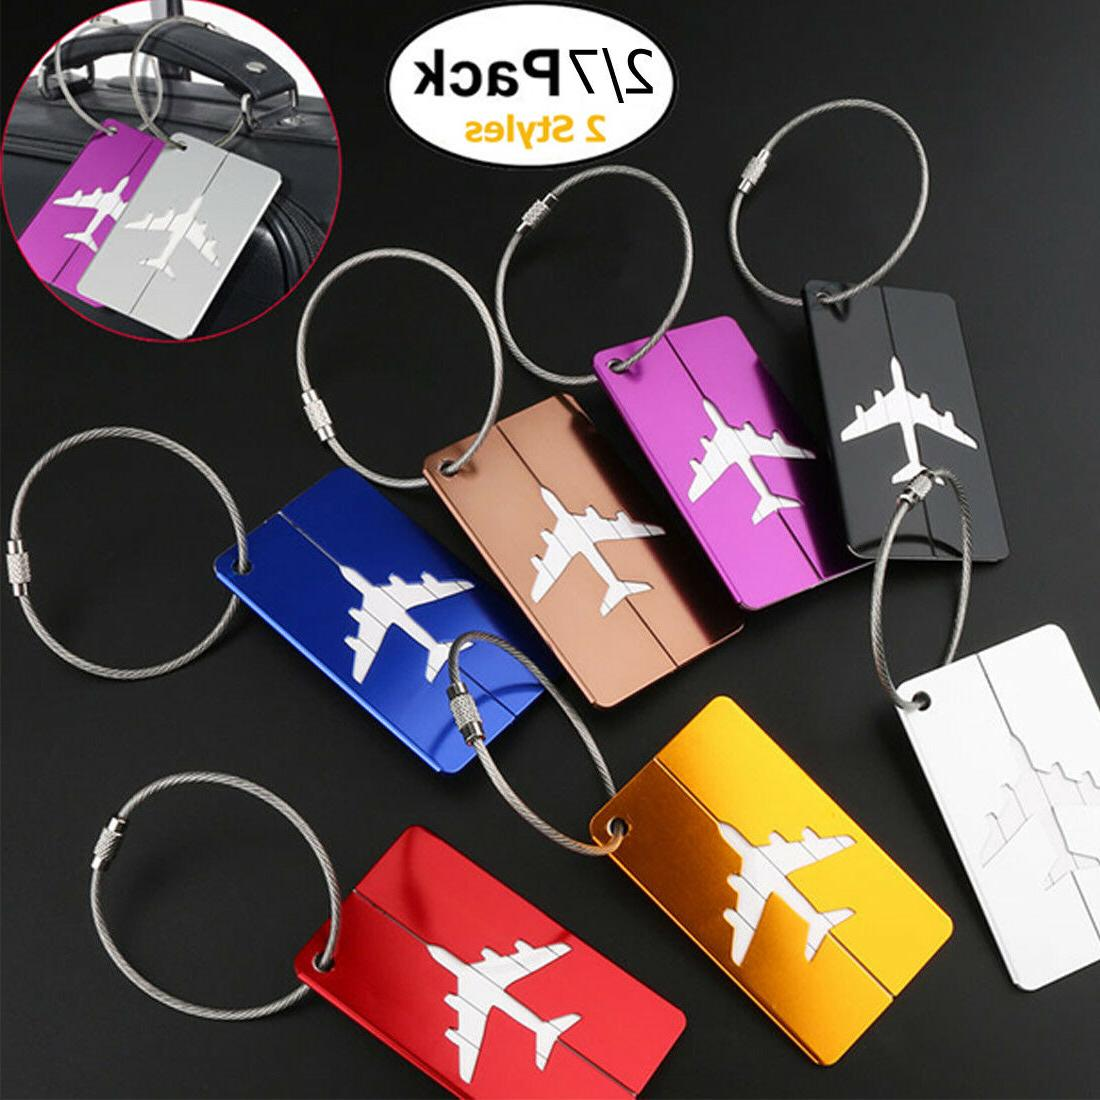 premium aluminium travel baggage suitcase luggage tag